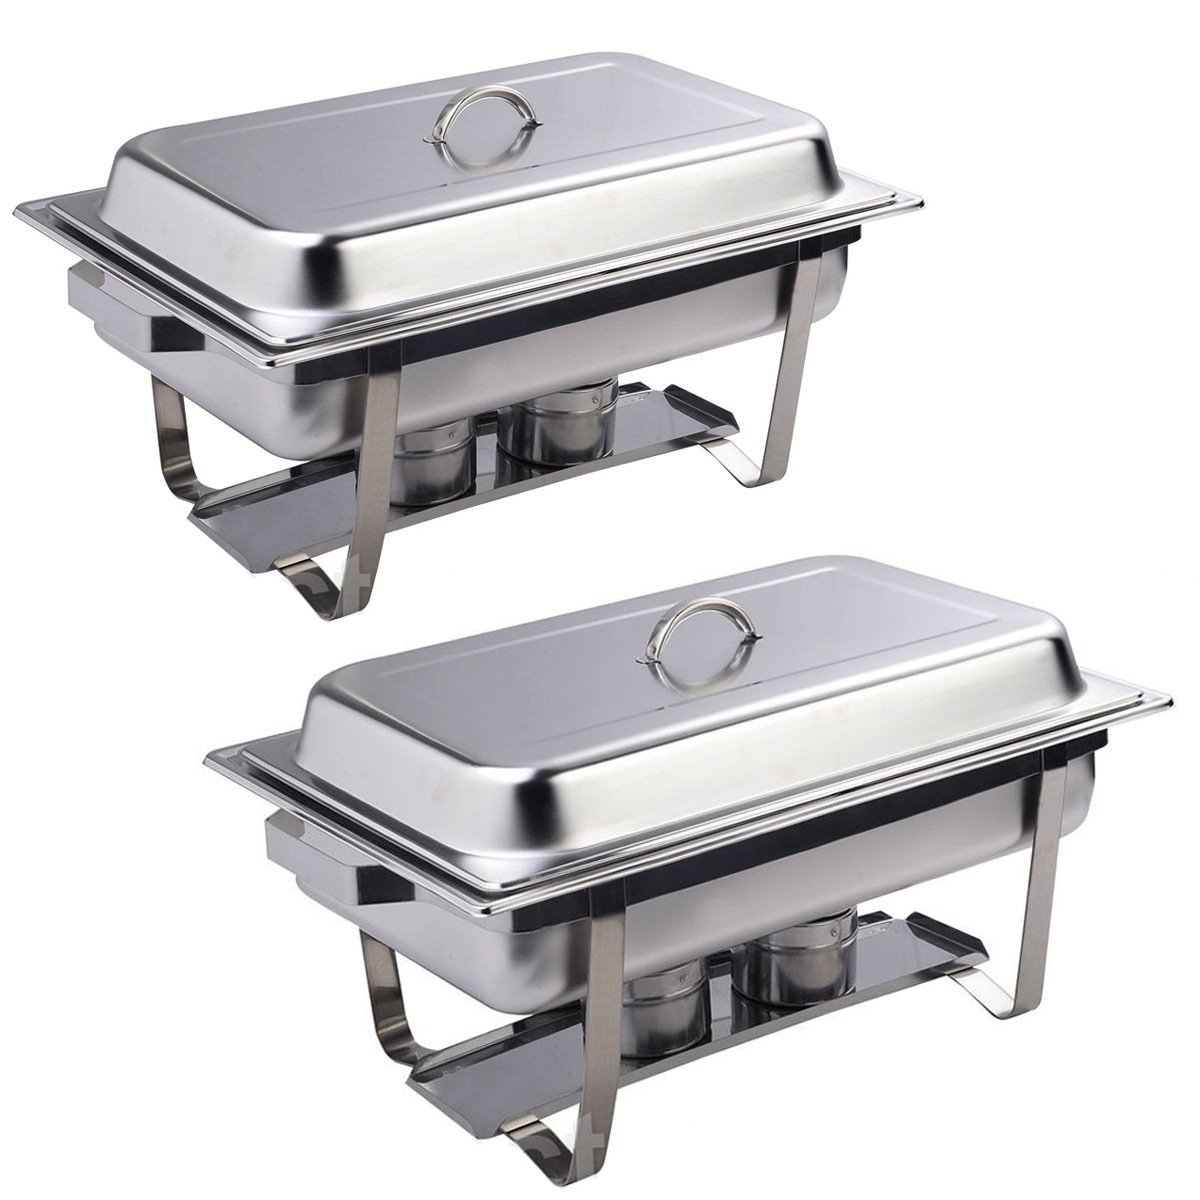 (2 Pack) 9 Quart Rectangular Chafing Dish Stainless Steel Full Size New MTN-G by Apontus